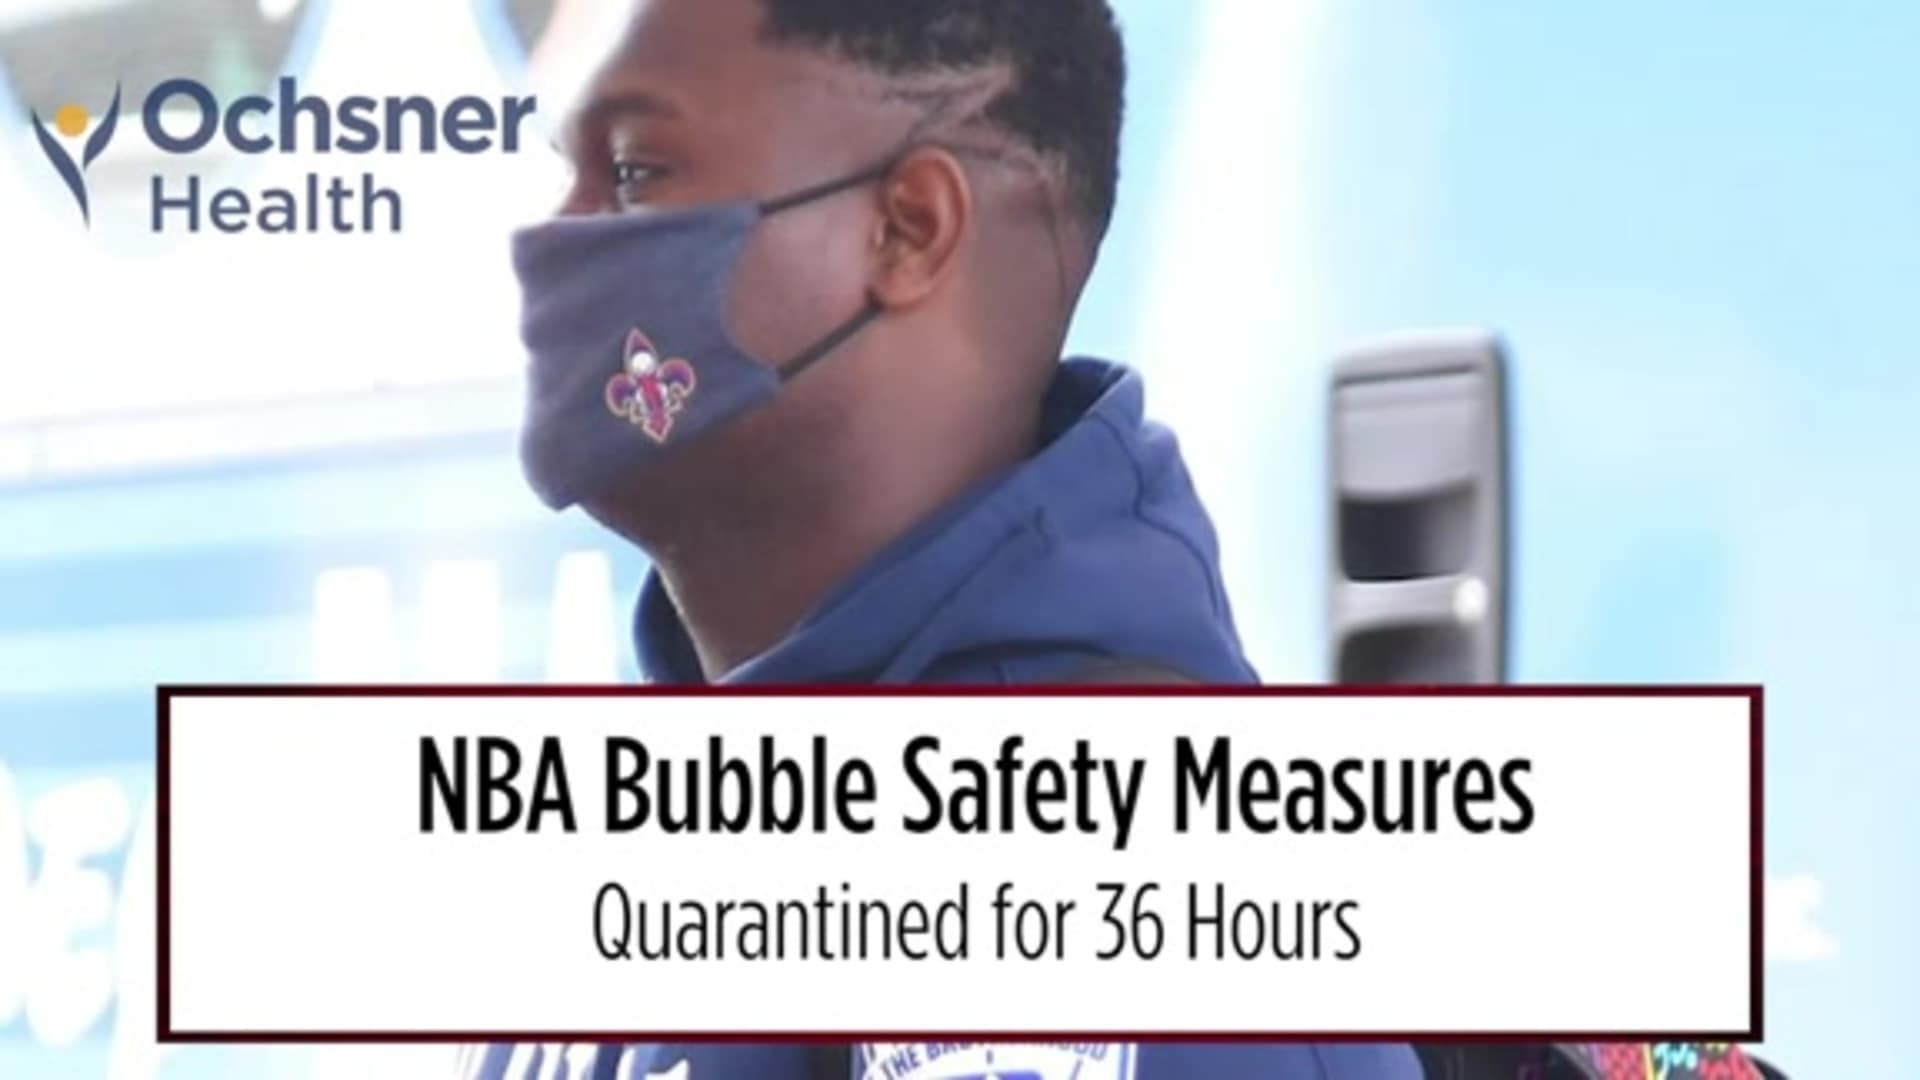 A look inside the NBA Orlando bubble with the Pelicans team physician